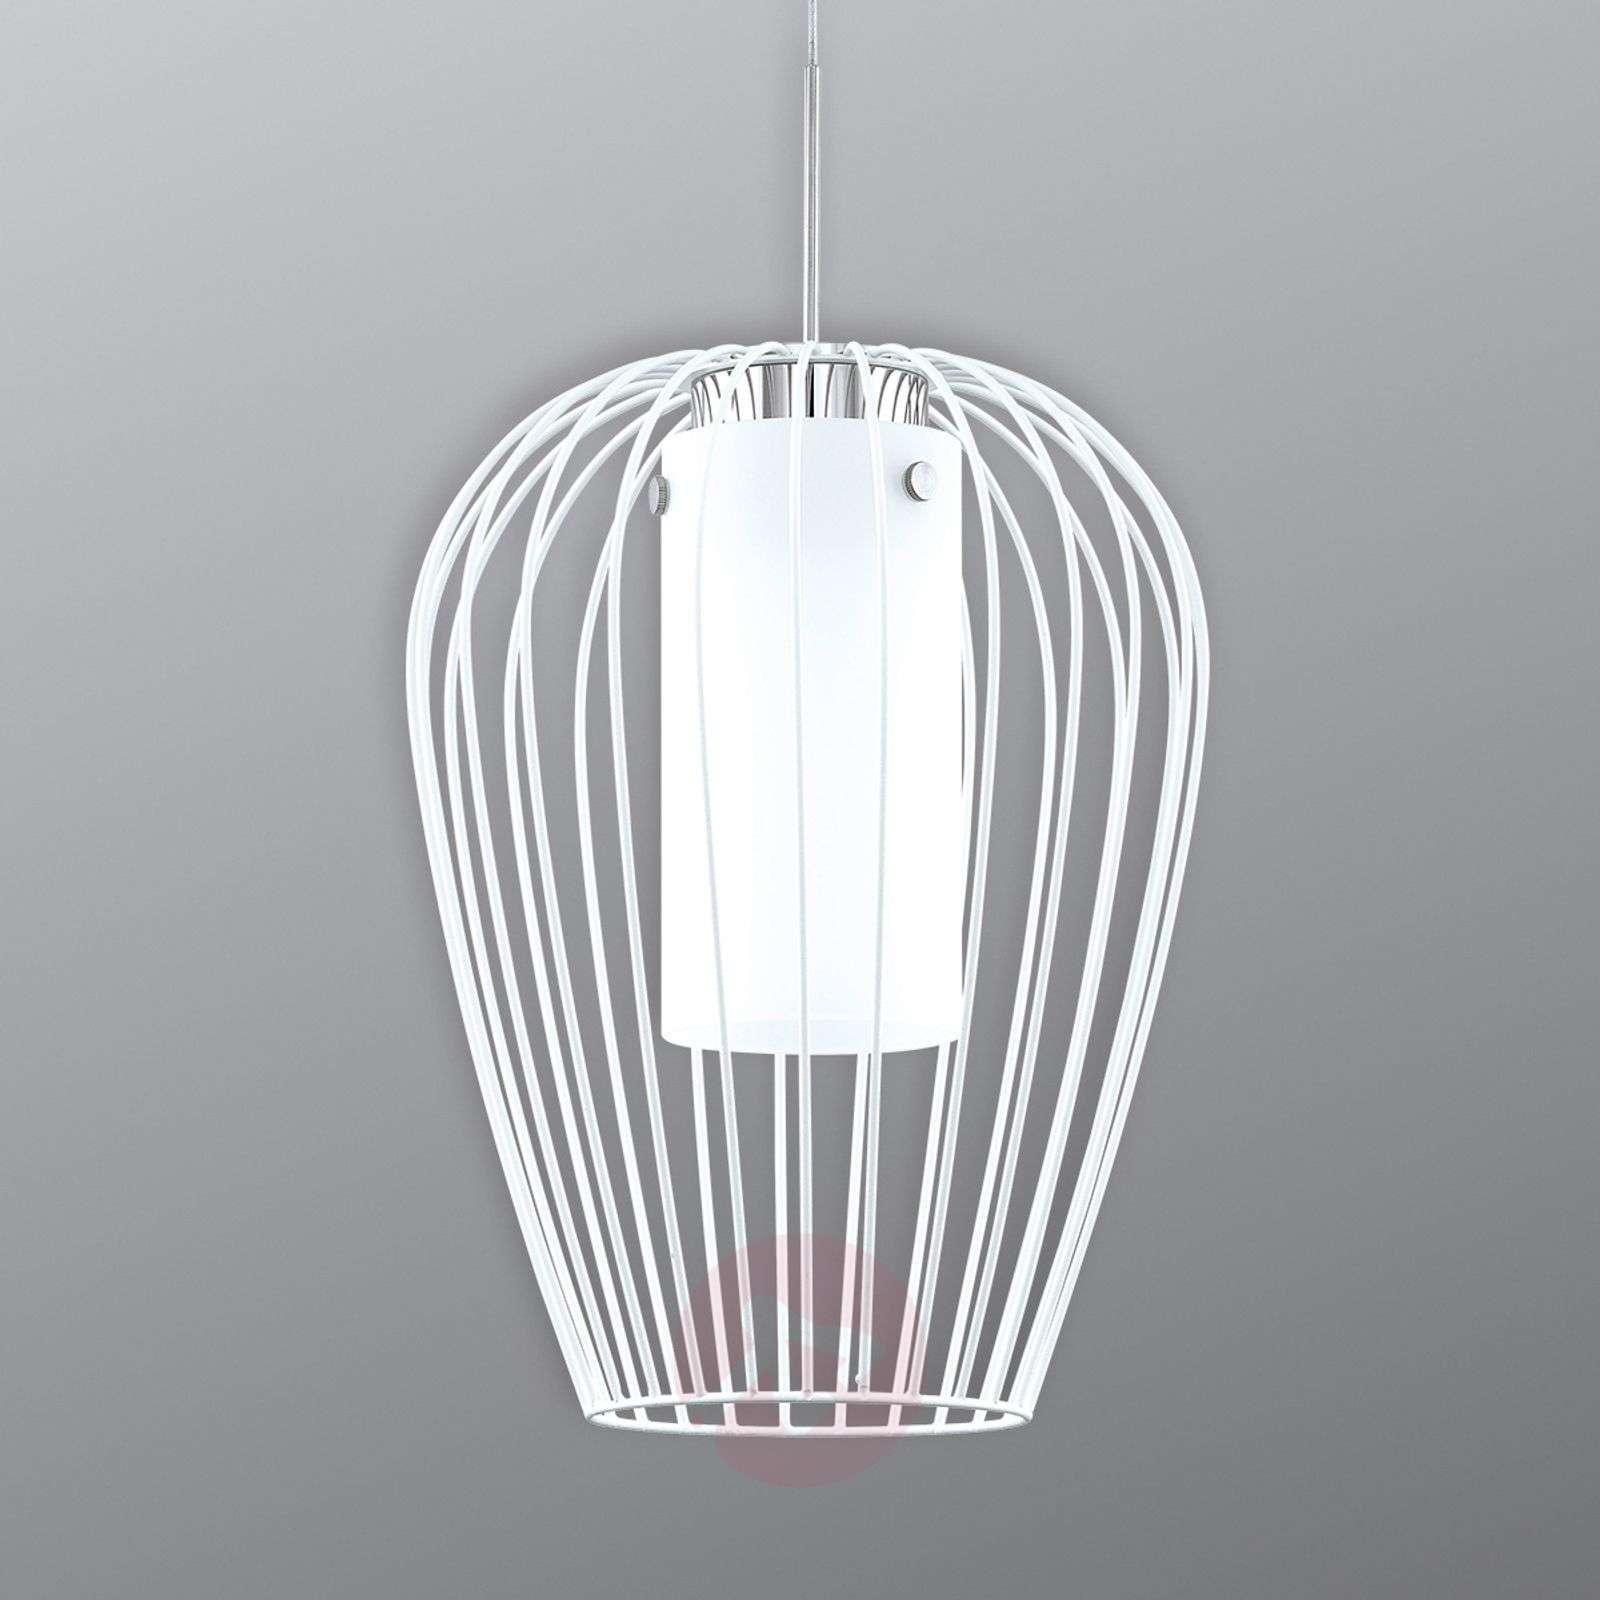 LED hanglamp Vencino uit staal-3031735-01